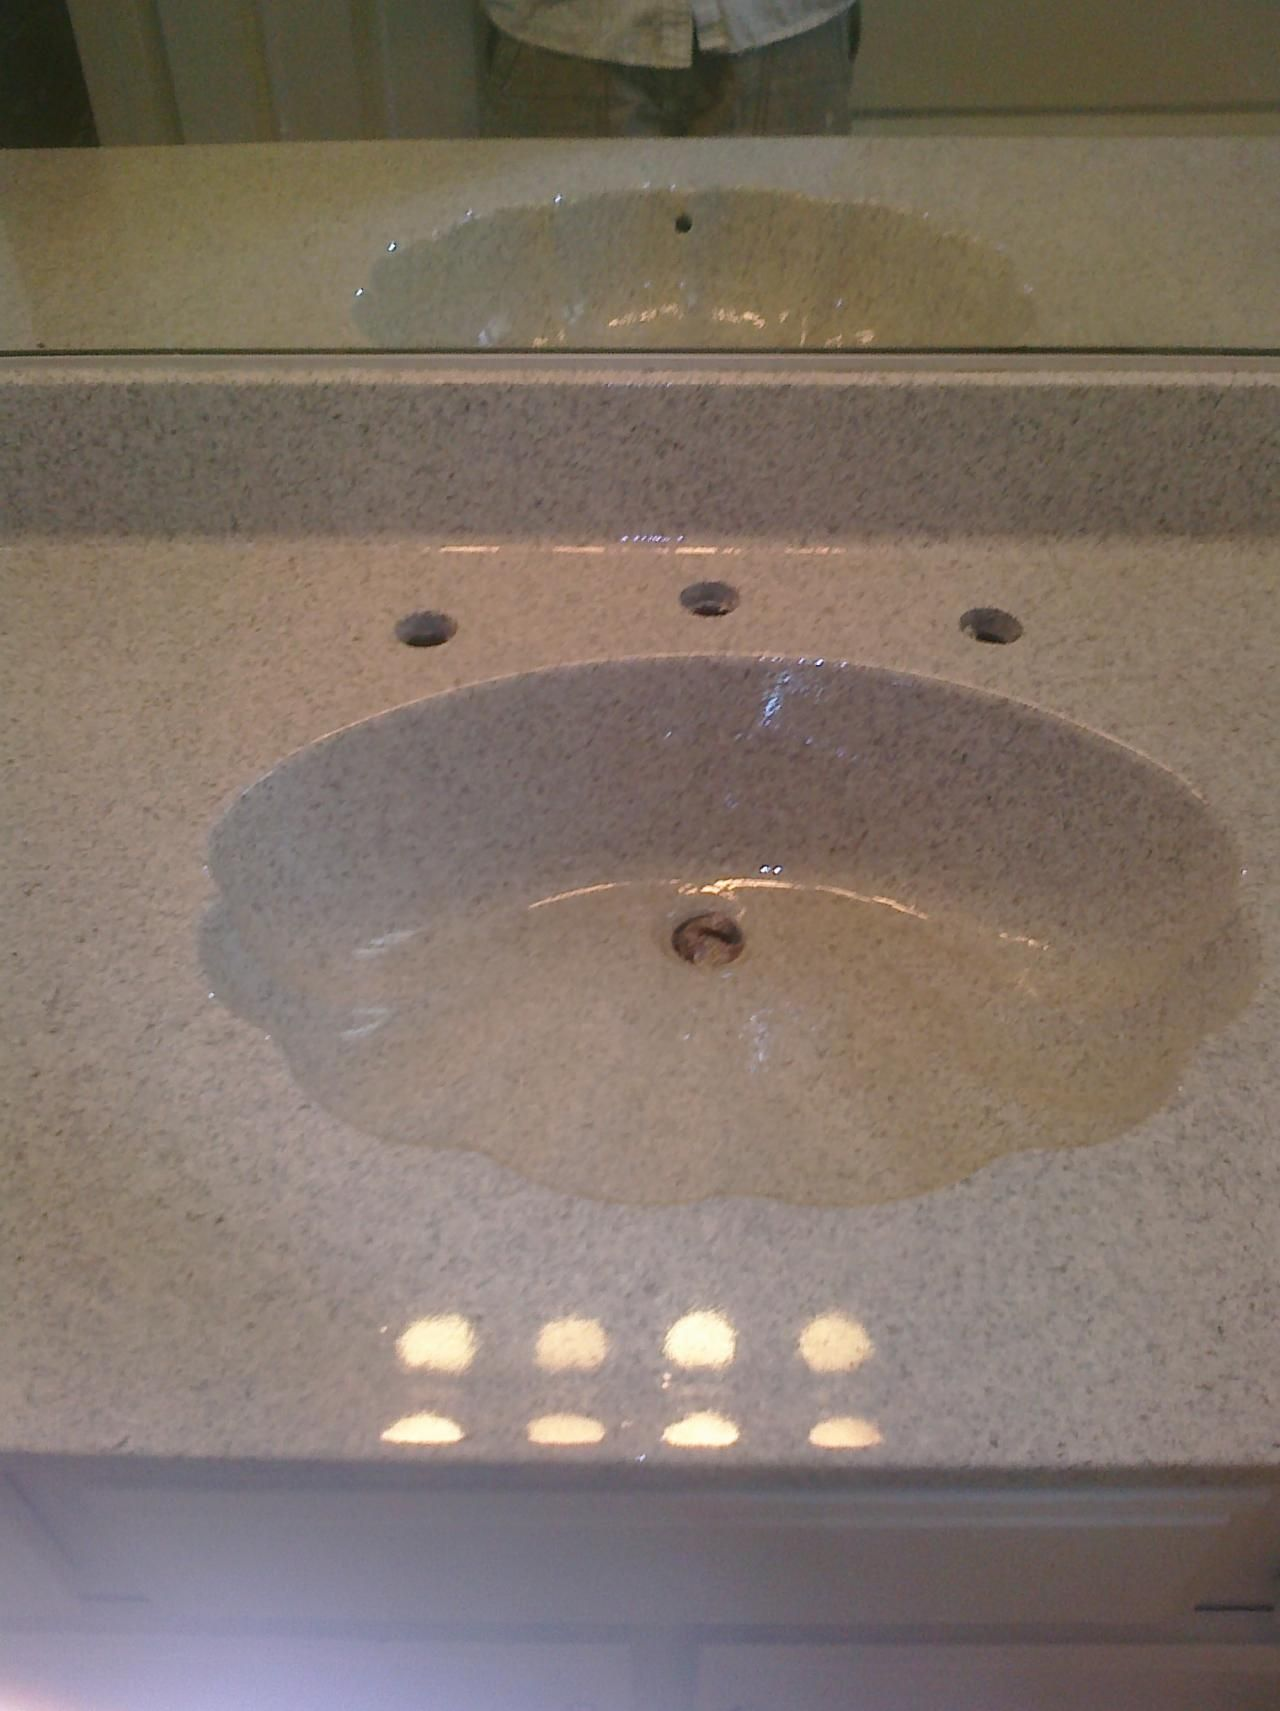 PKB Reglazing : Cultured Marble Sink Reglazed Travertine Speckled